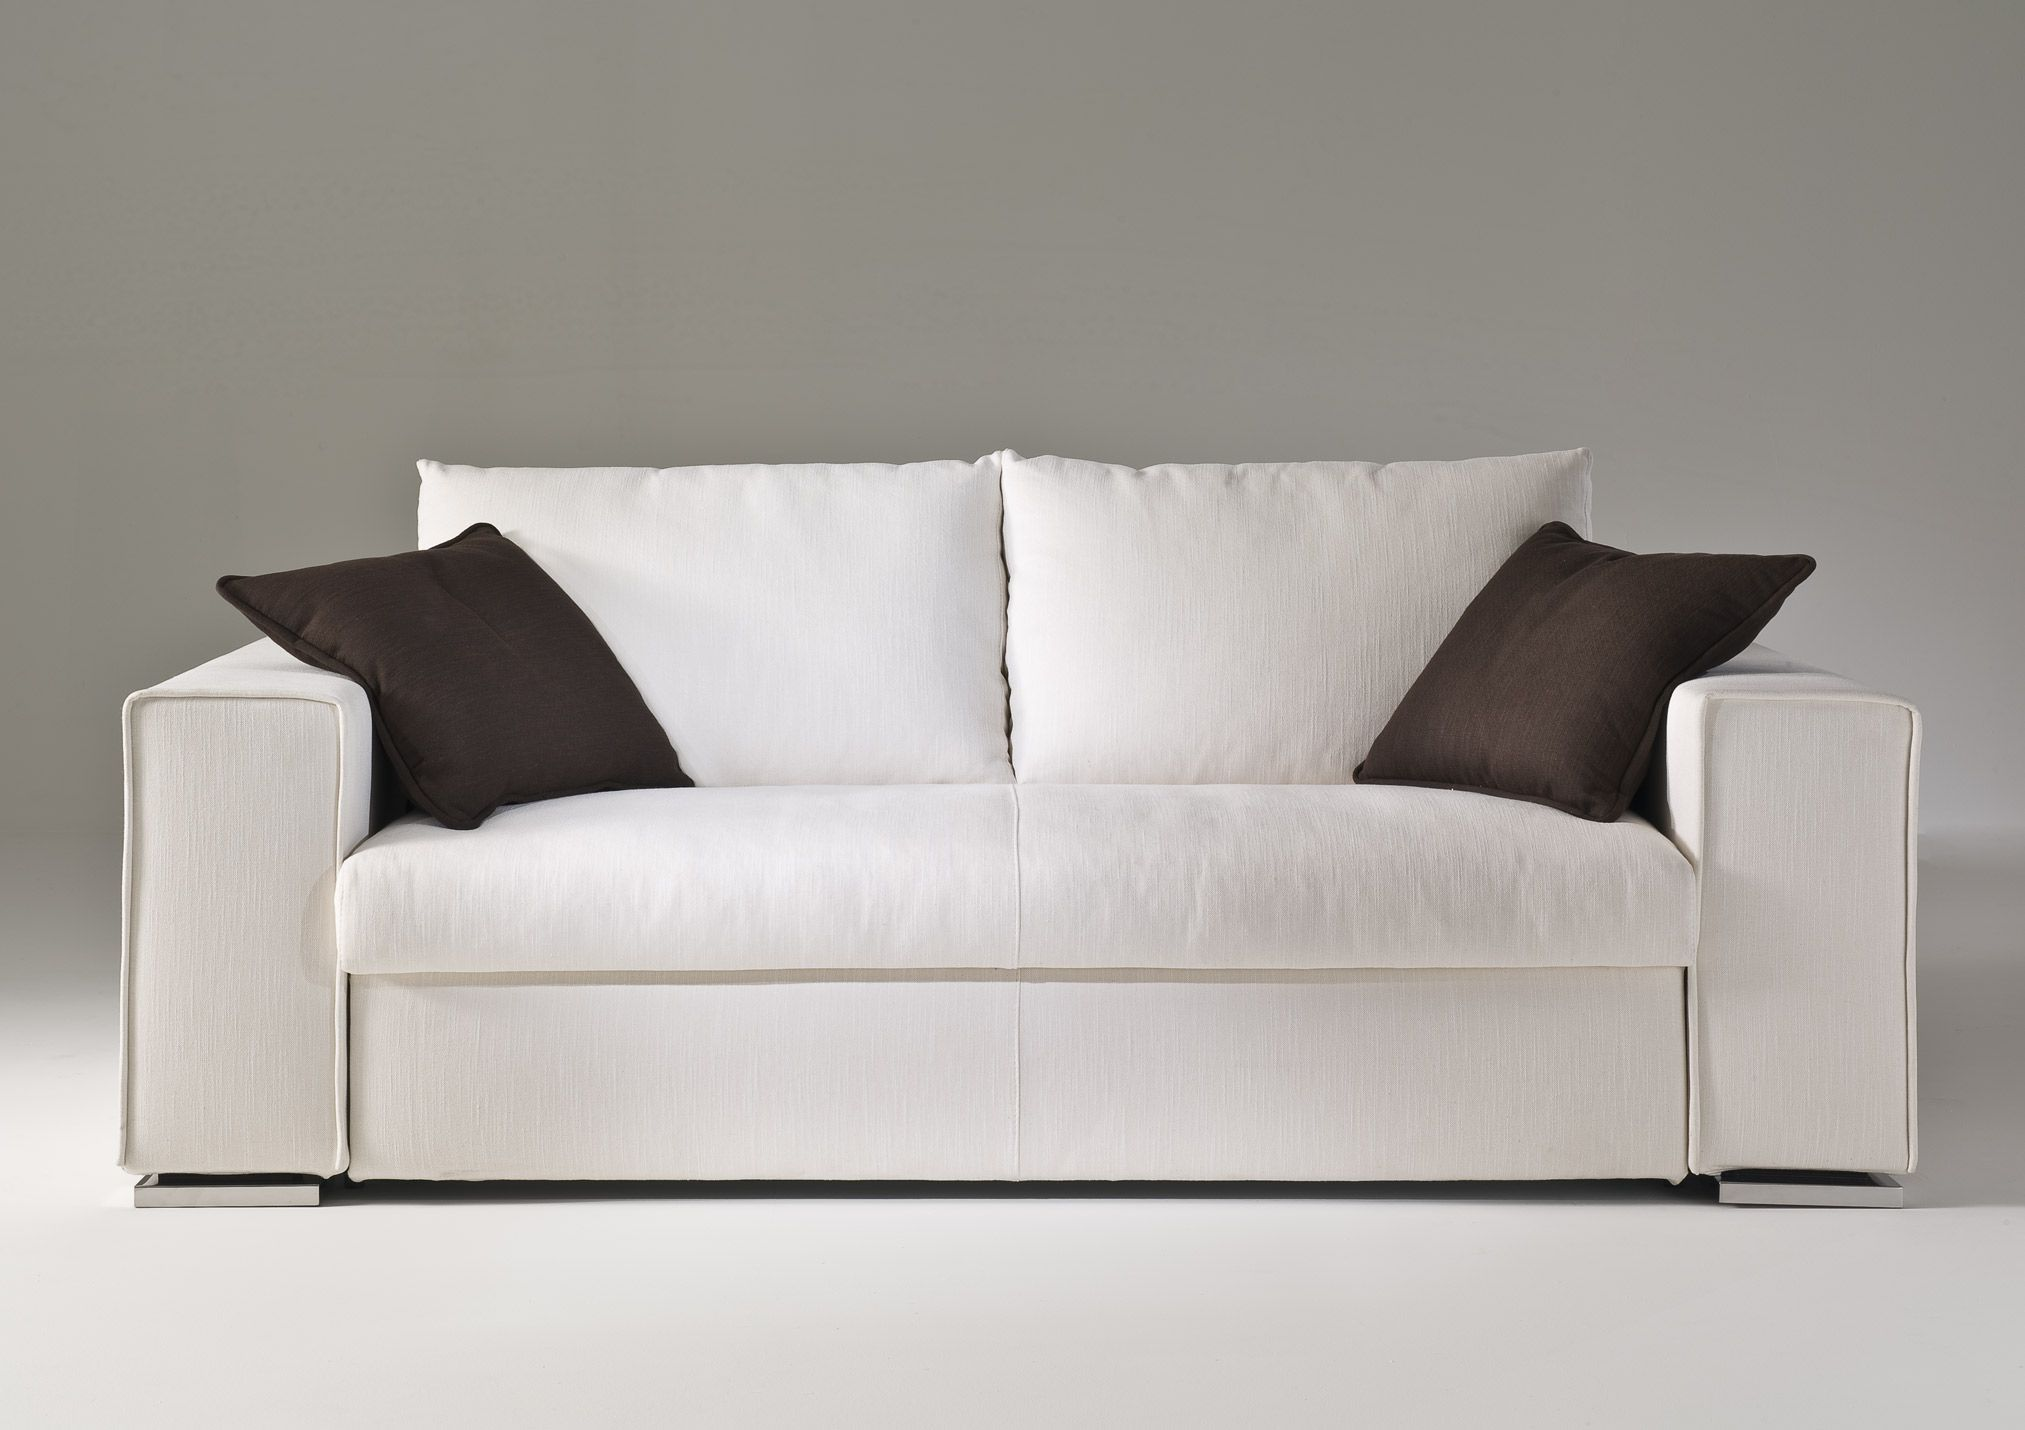 Baltimora Convertible Sofa Bed Berto Salotti Sofa